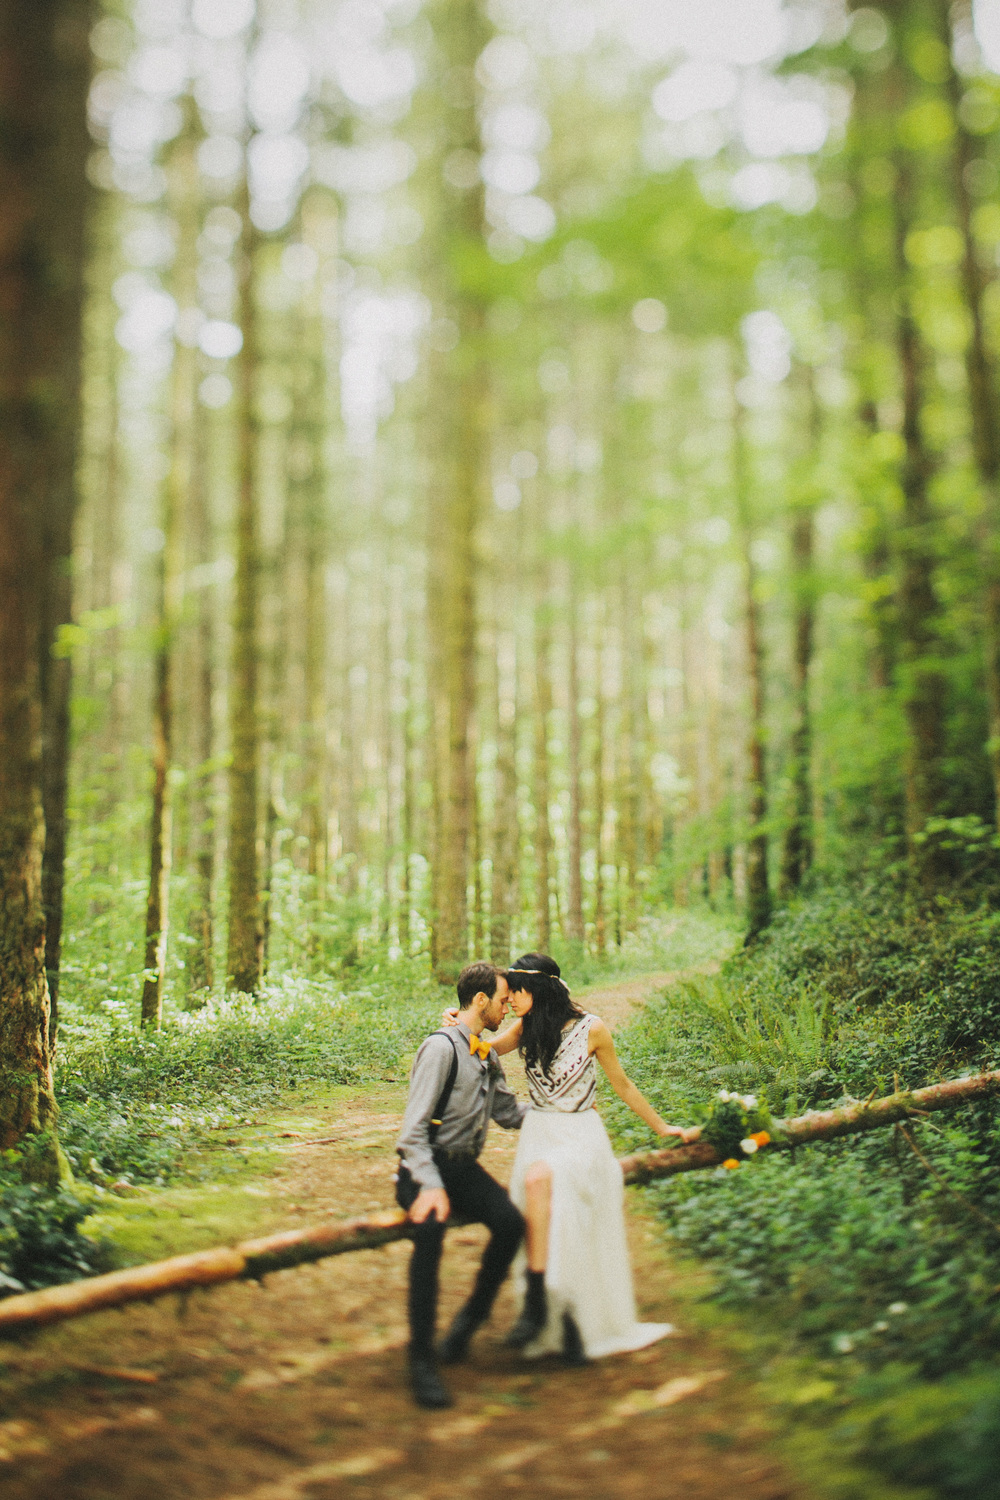 Our amazing friend Benj Haisch shot our wedding photos which you can view on his blog  here .